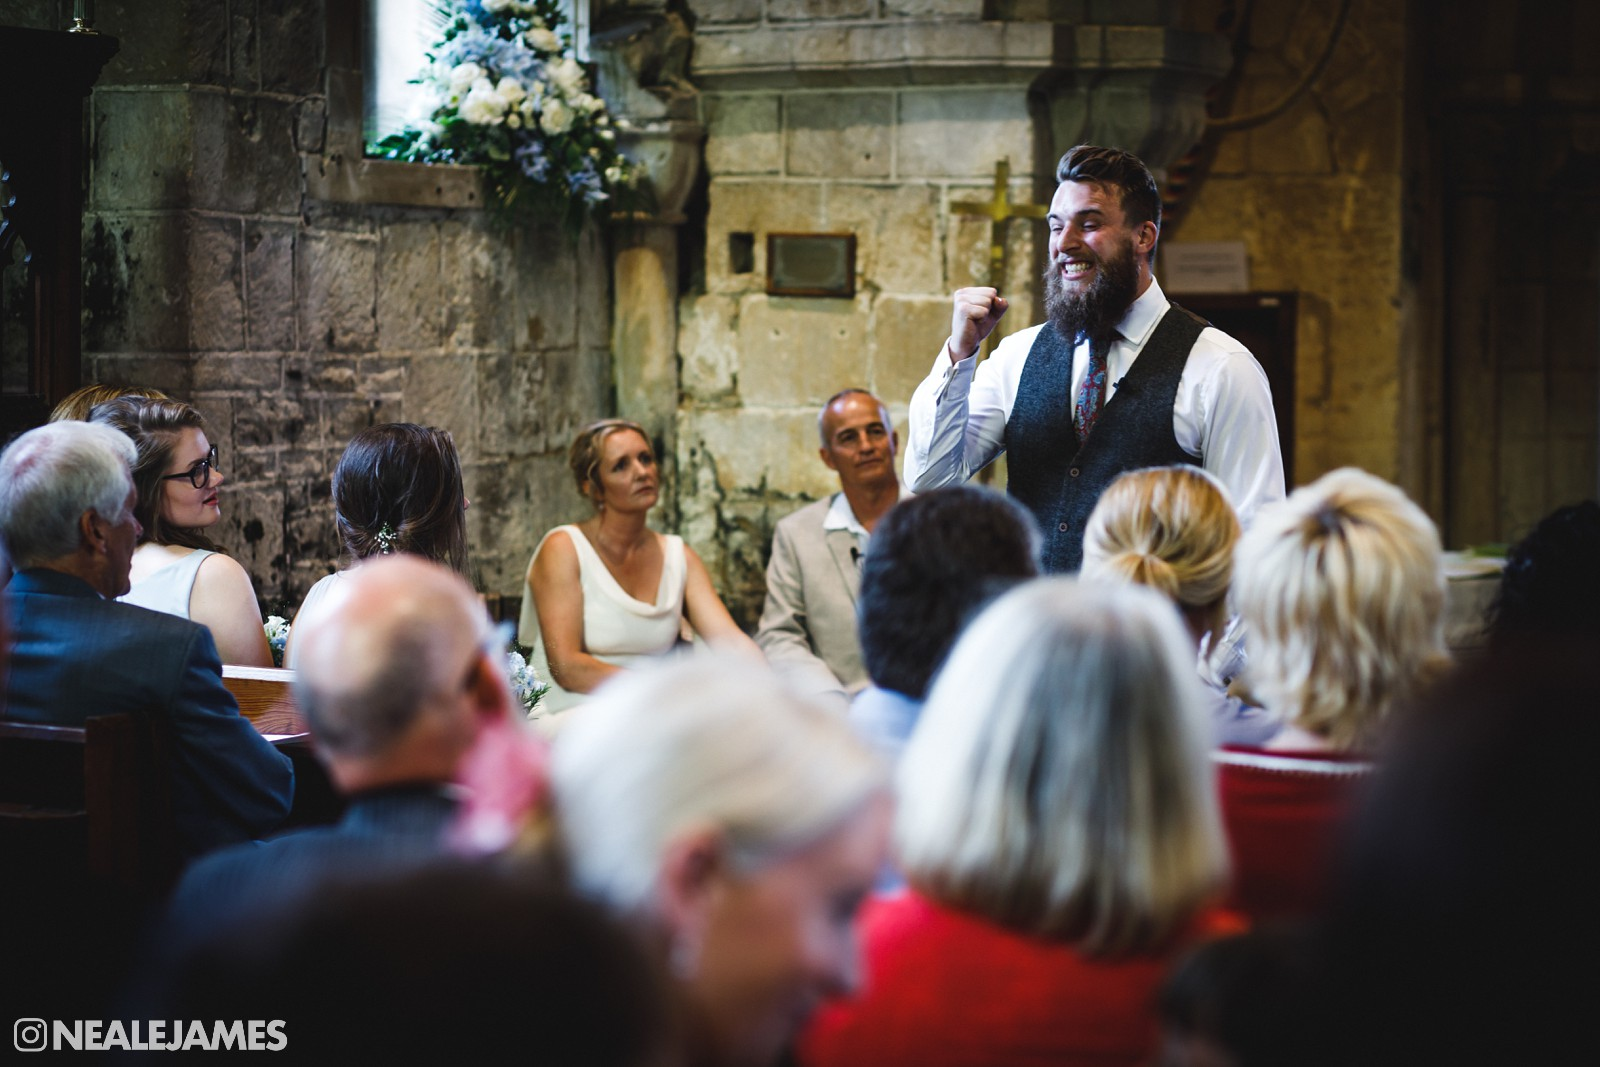 Colour photo of a preacher at a wedding in Bath